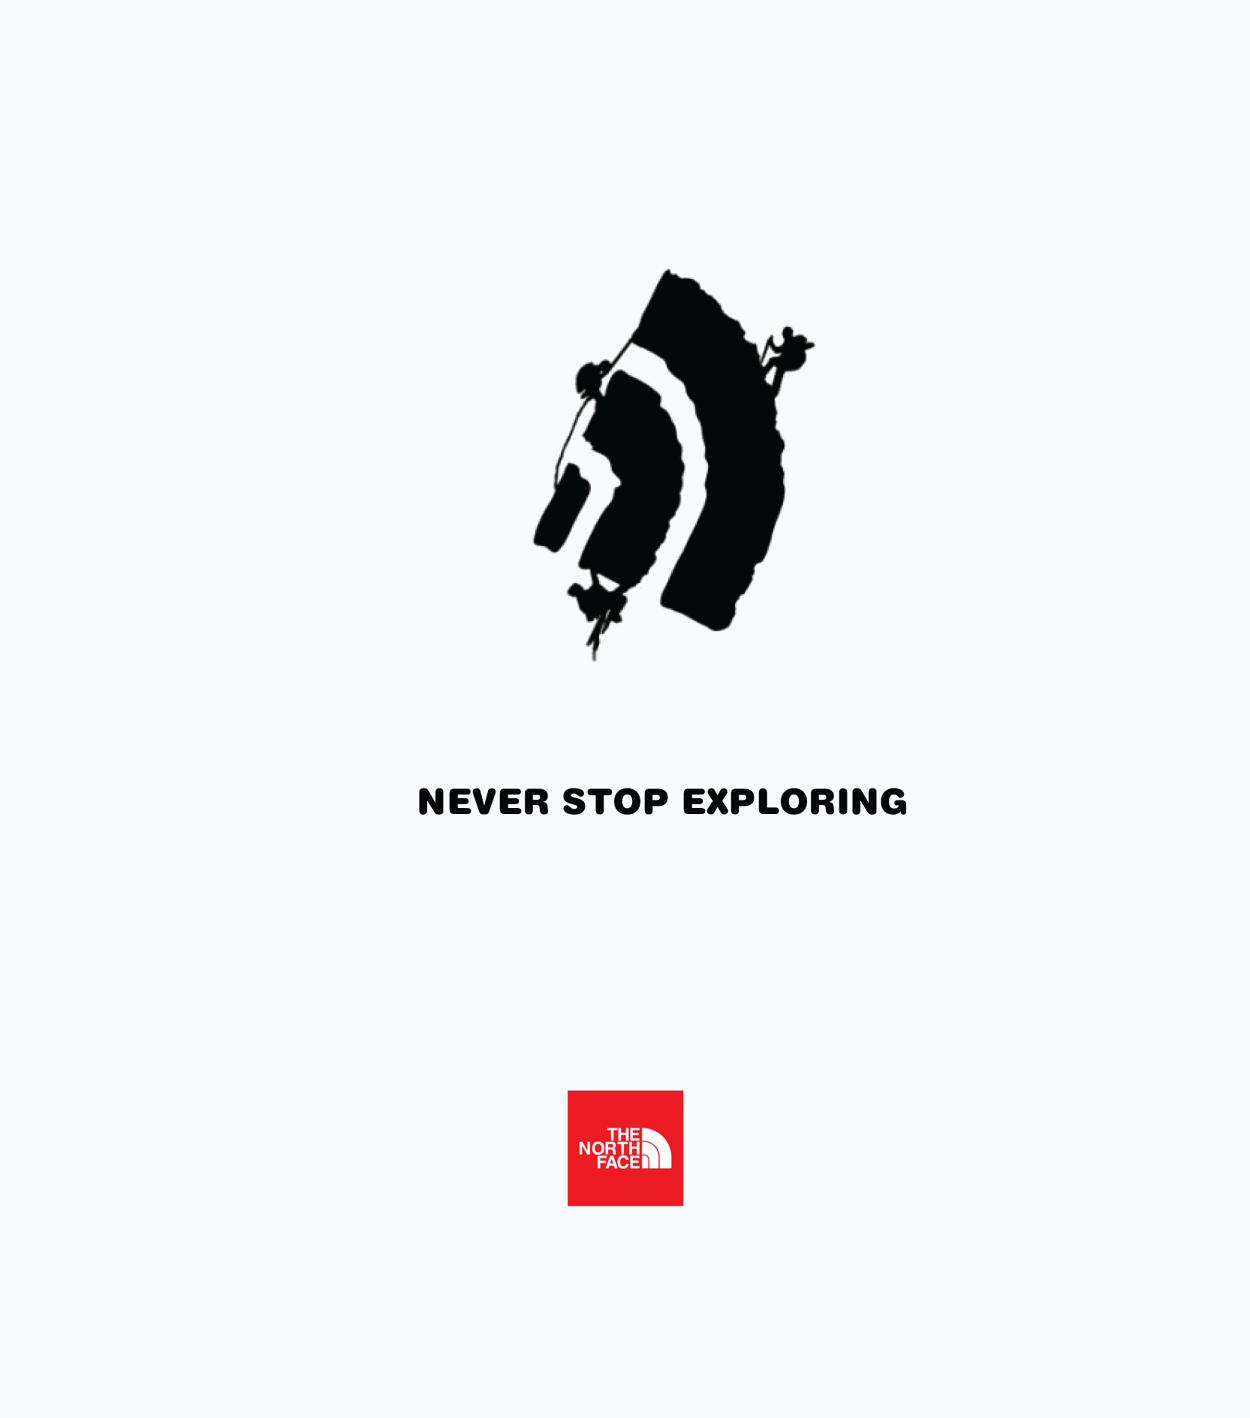 the north face graphic logo